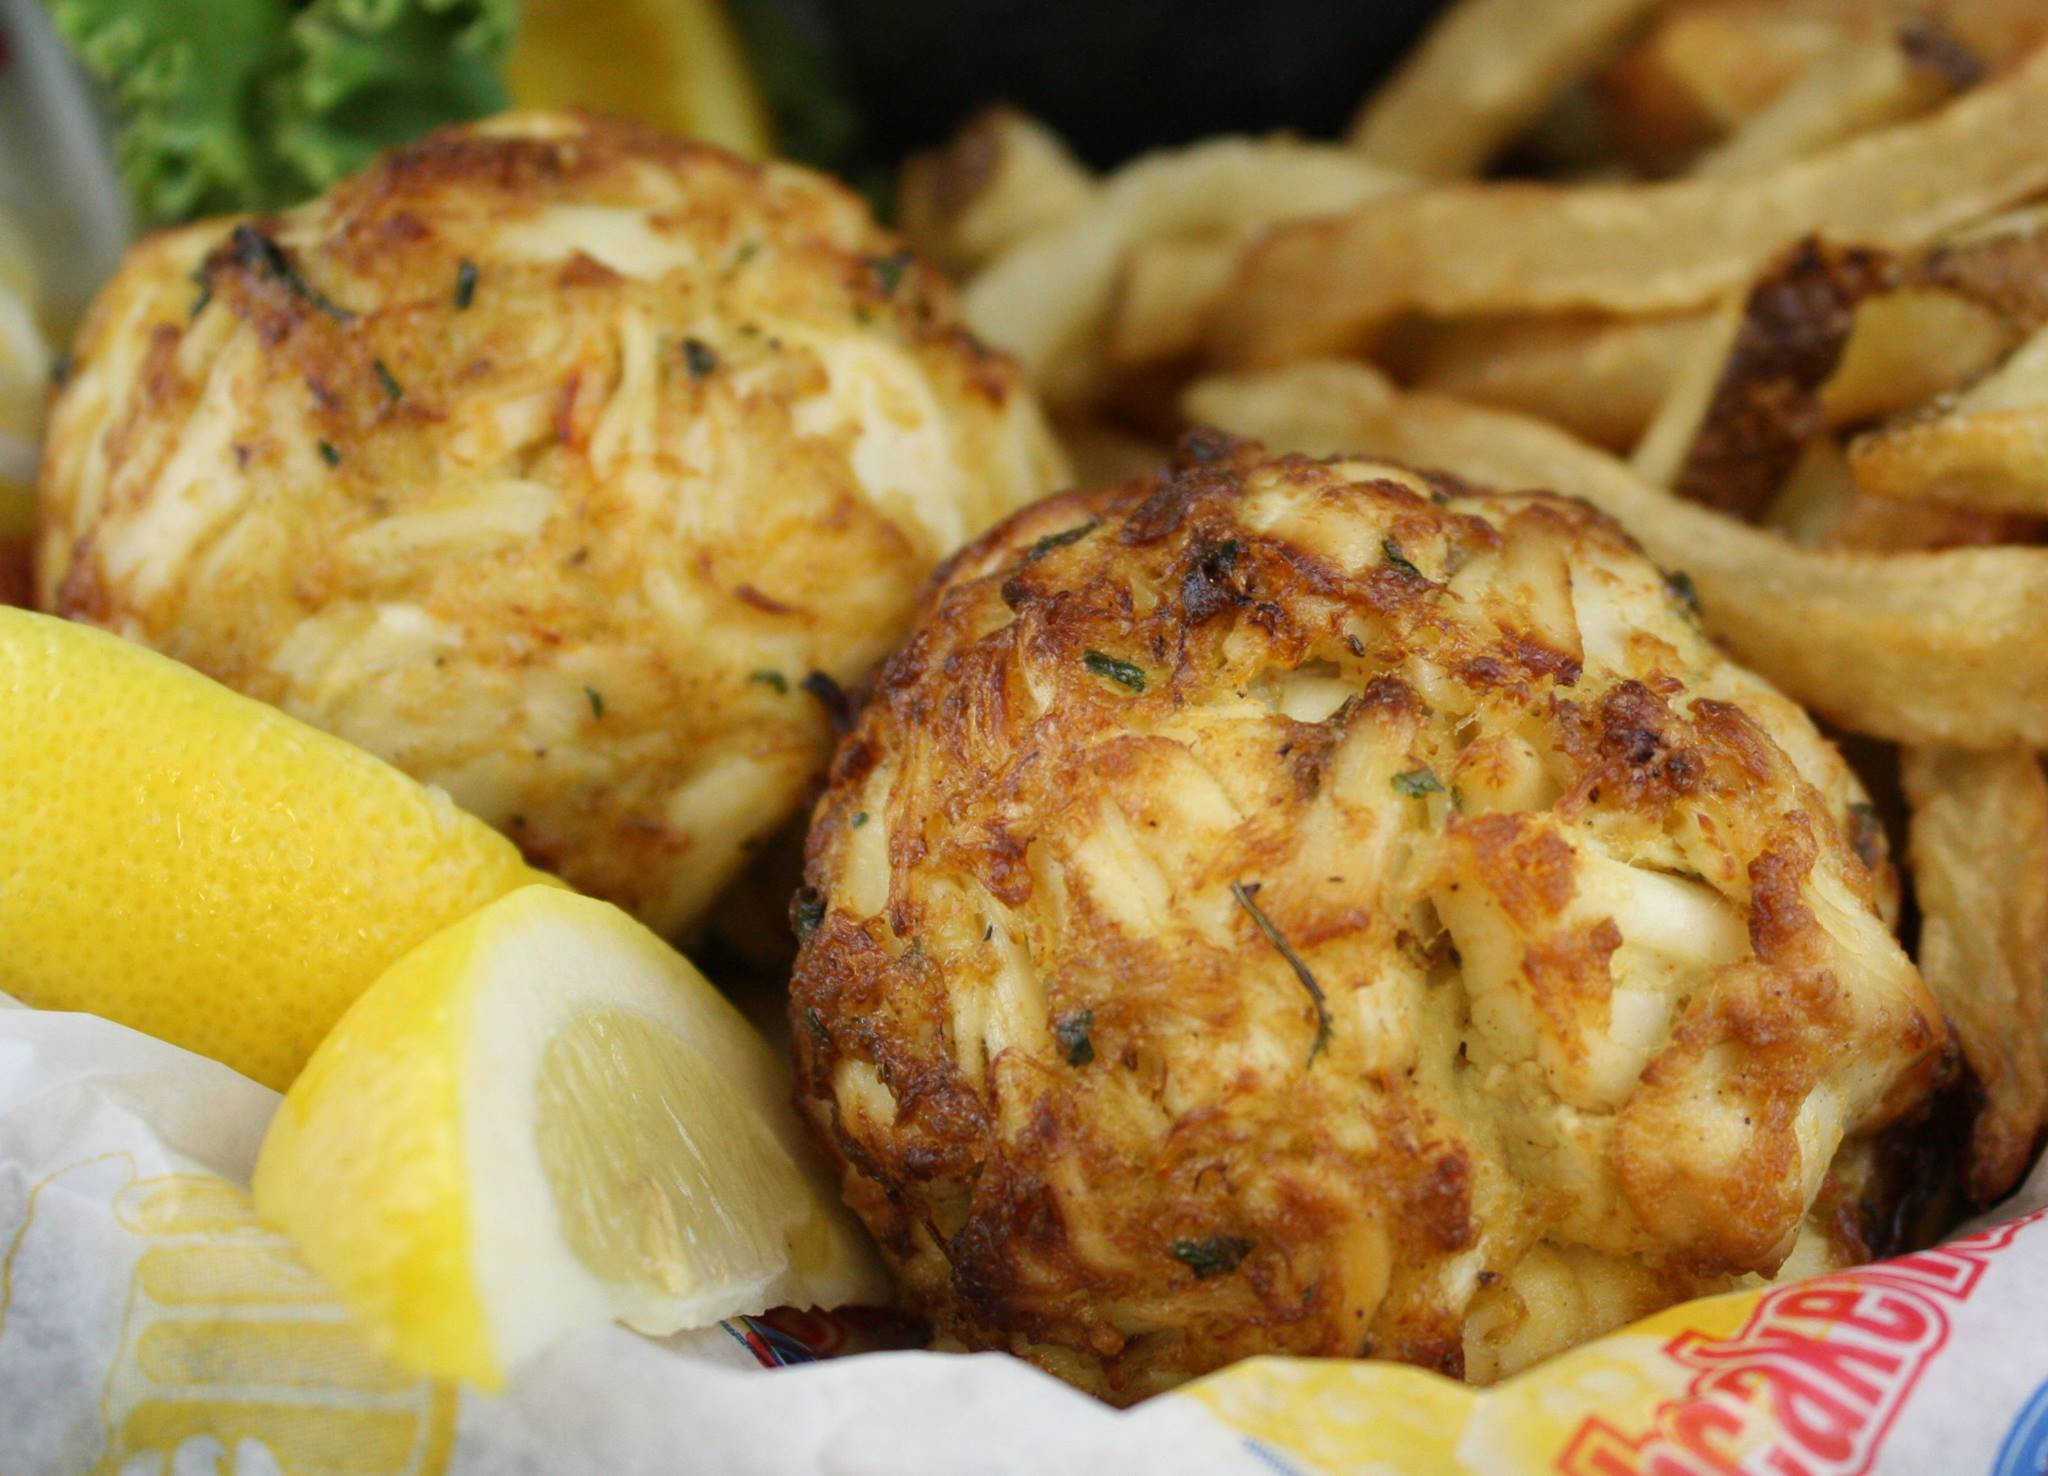 crabcake basket with fries and lemon